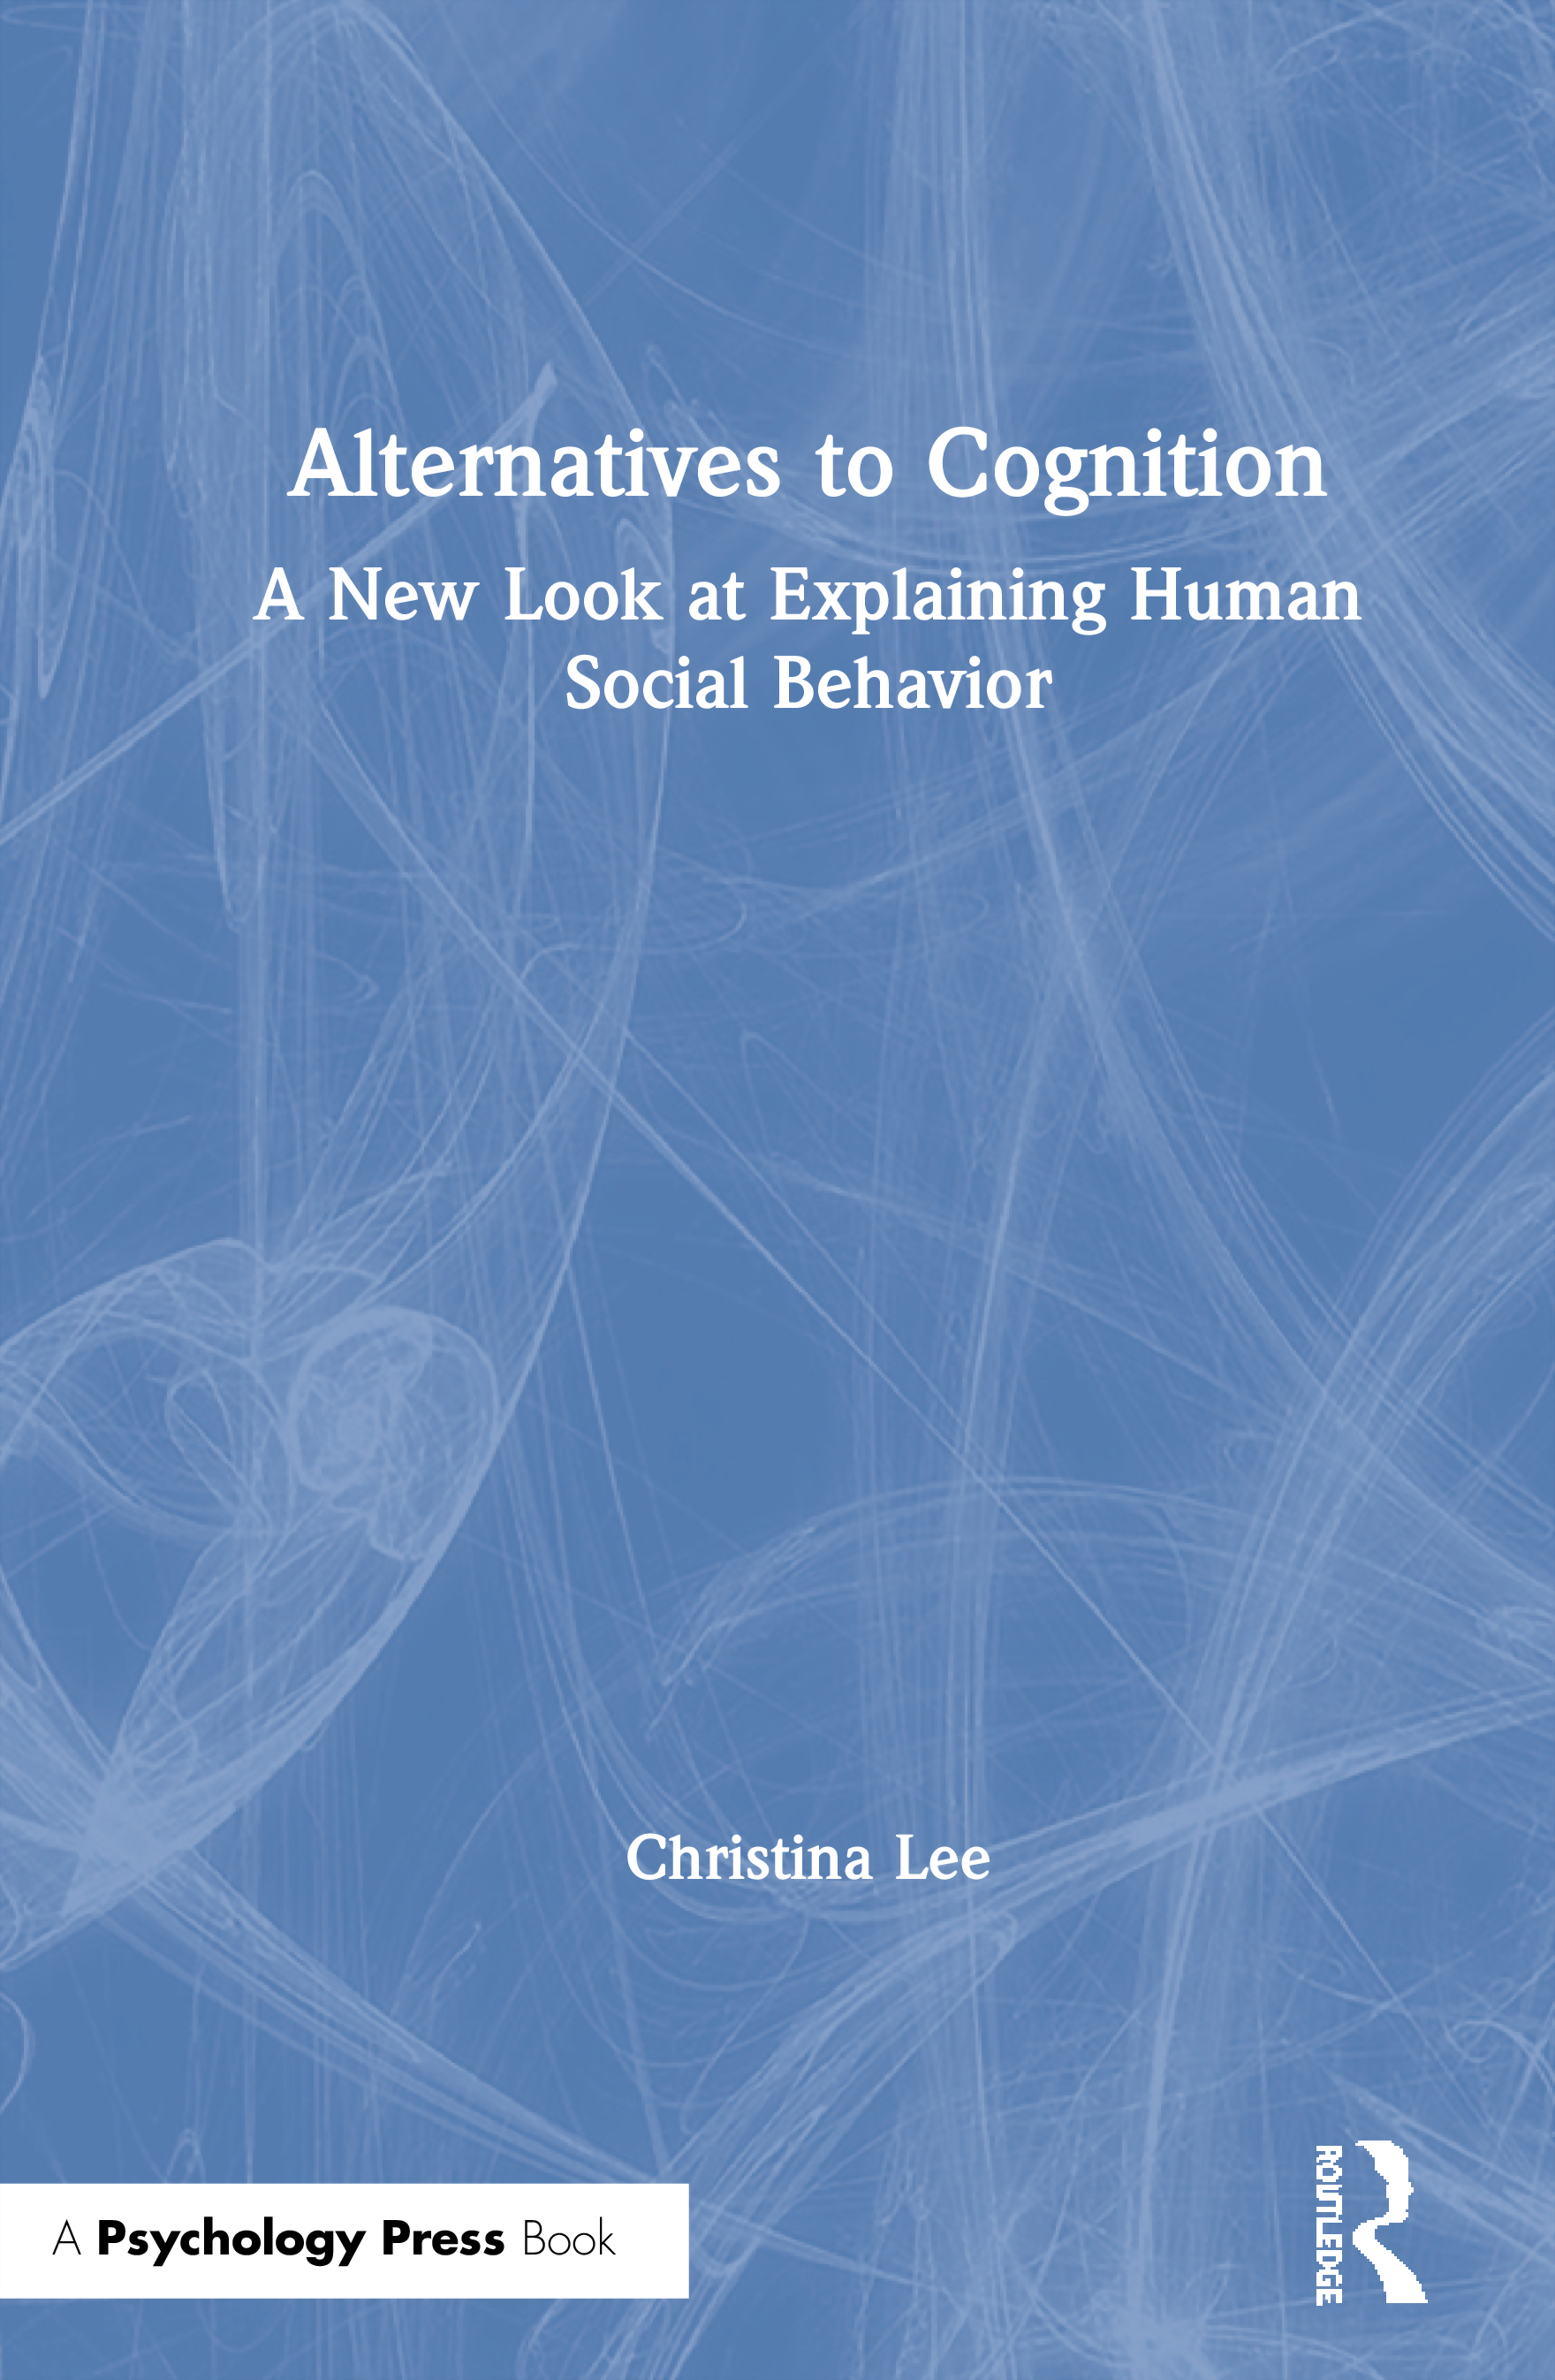 Alternatives to Cognition: A New Look at Explaining Human Social Behavior book cover